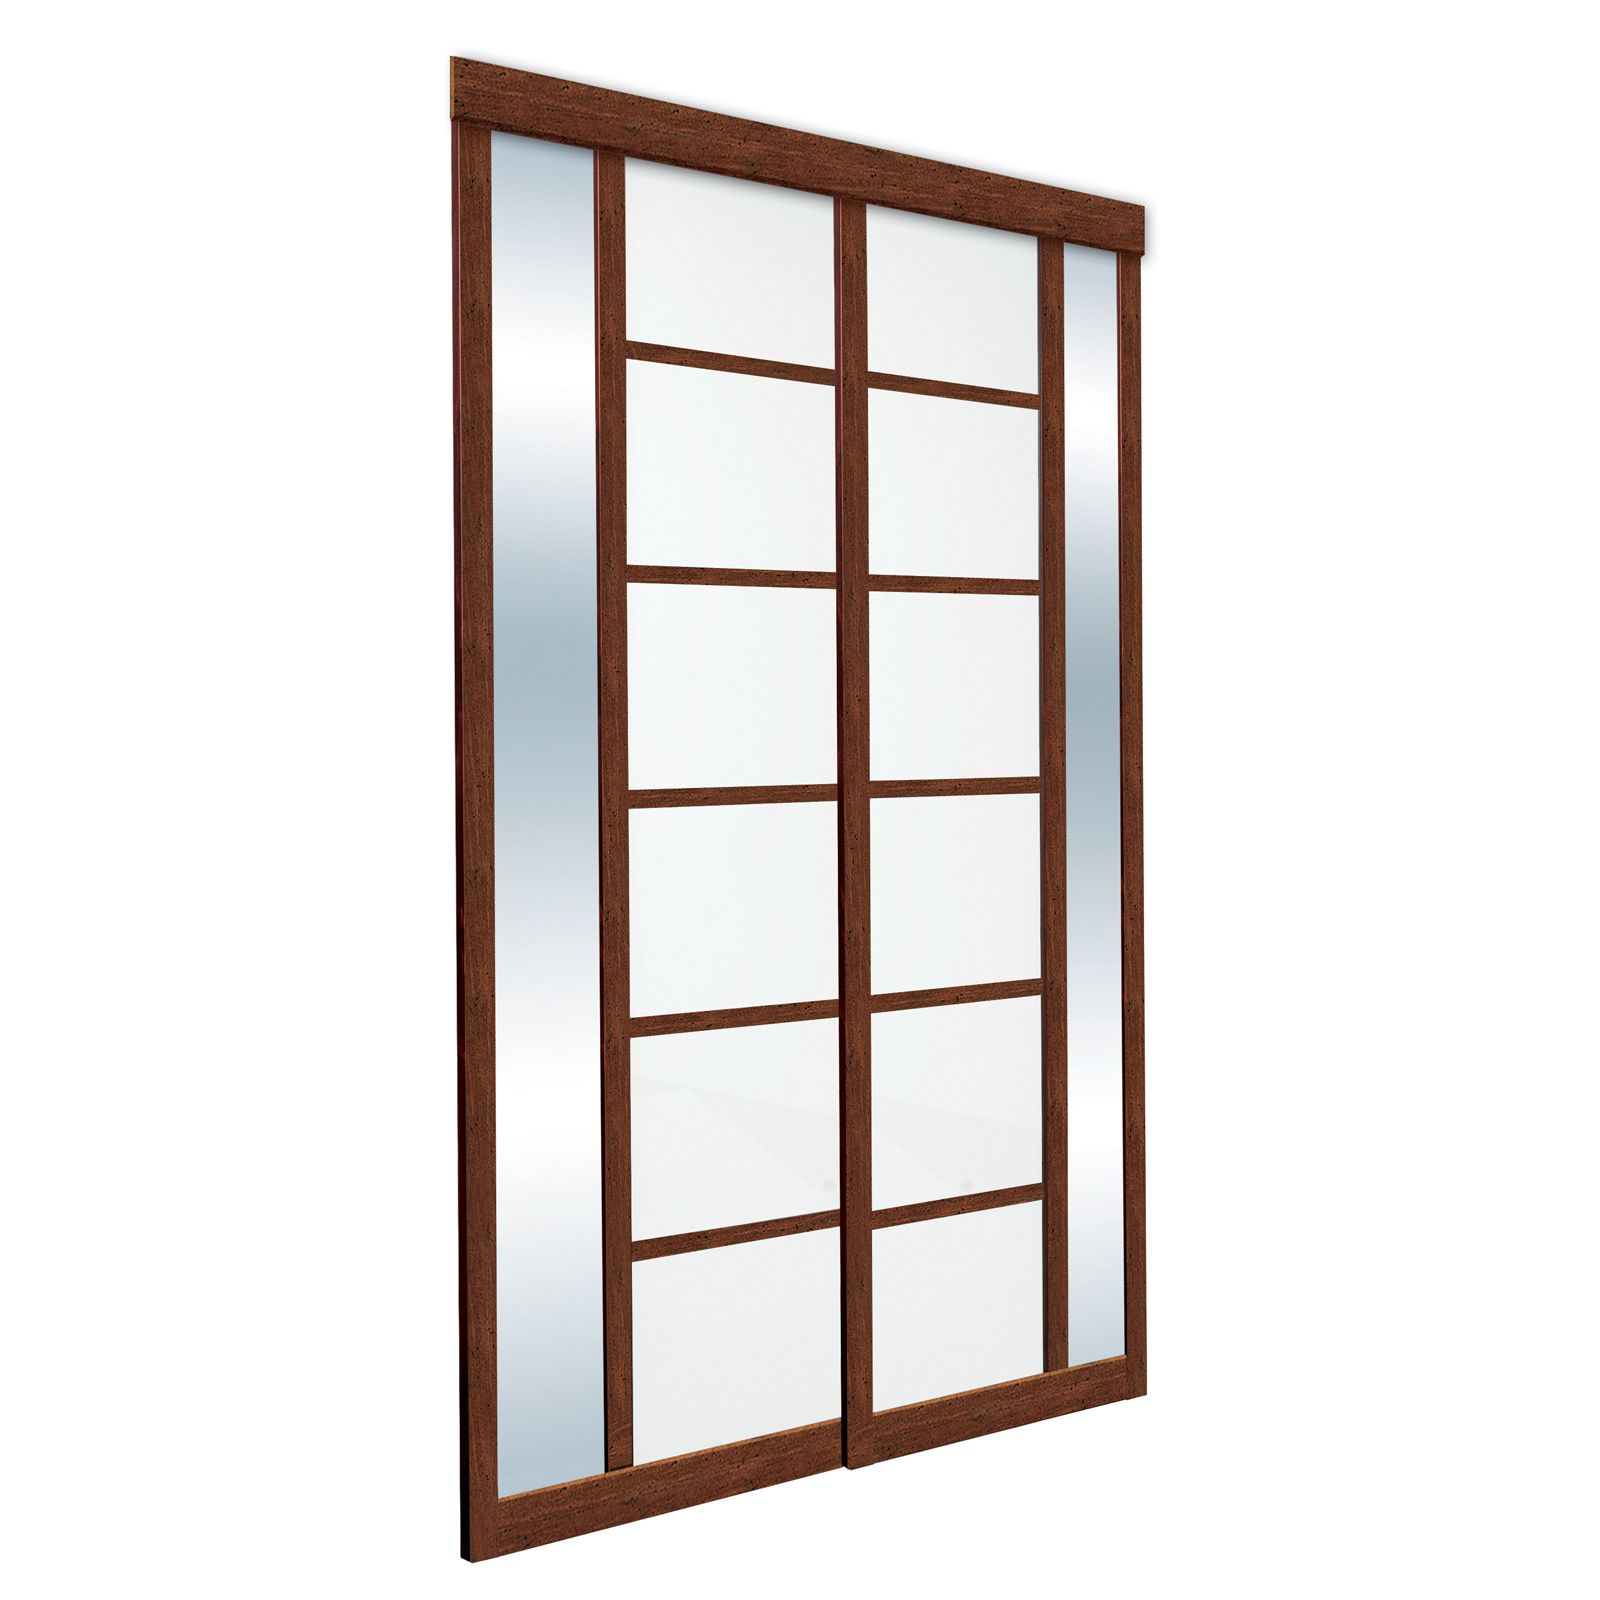 Sibelius frosted glass and clear mirror with pecan laminated wood